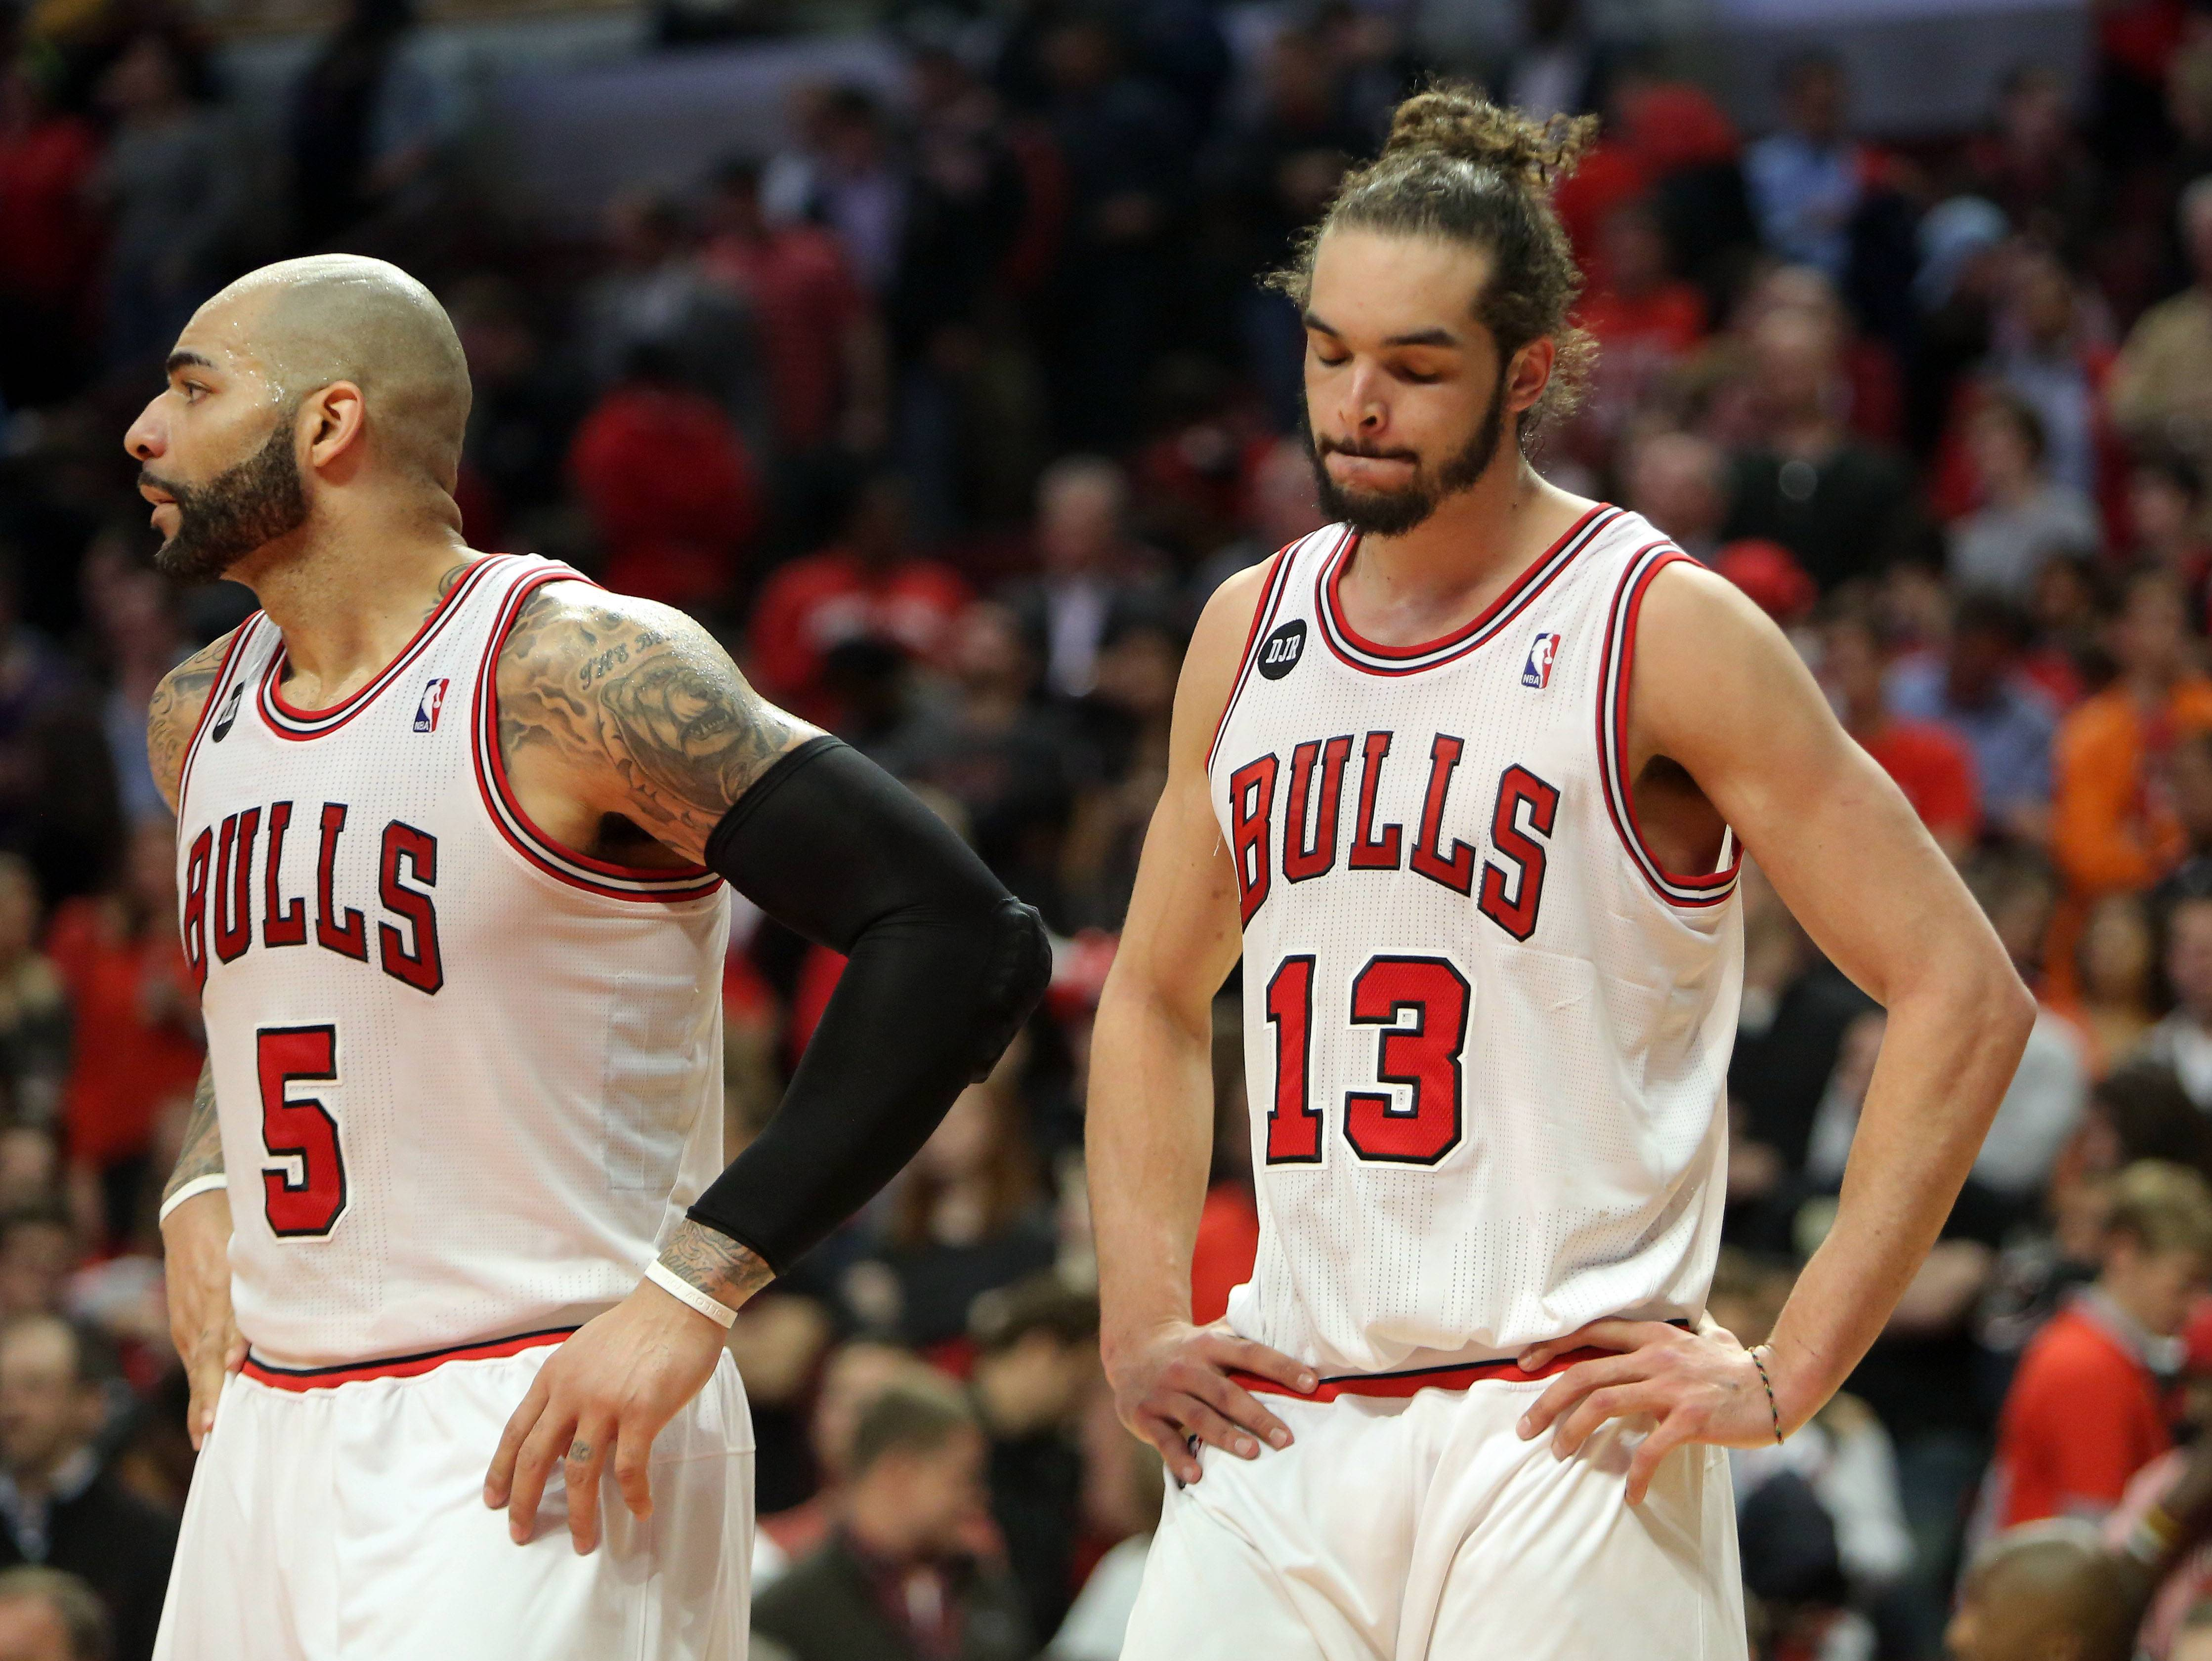 Chicago Bulls forward Carlos Boozer and Chicago Bulls center Joakim Noah react during the game.